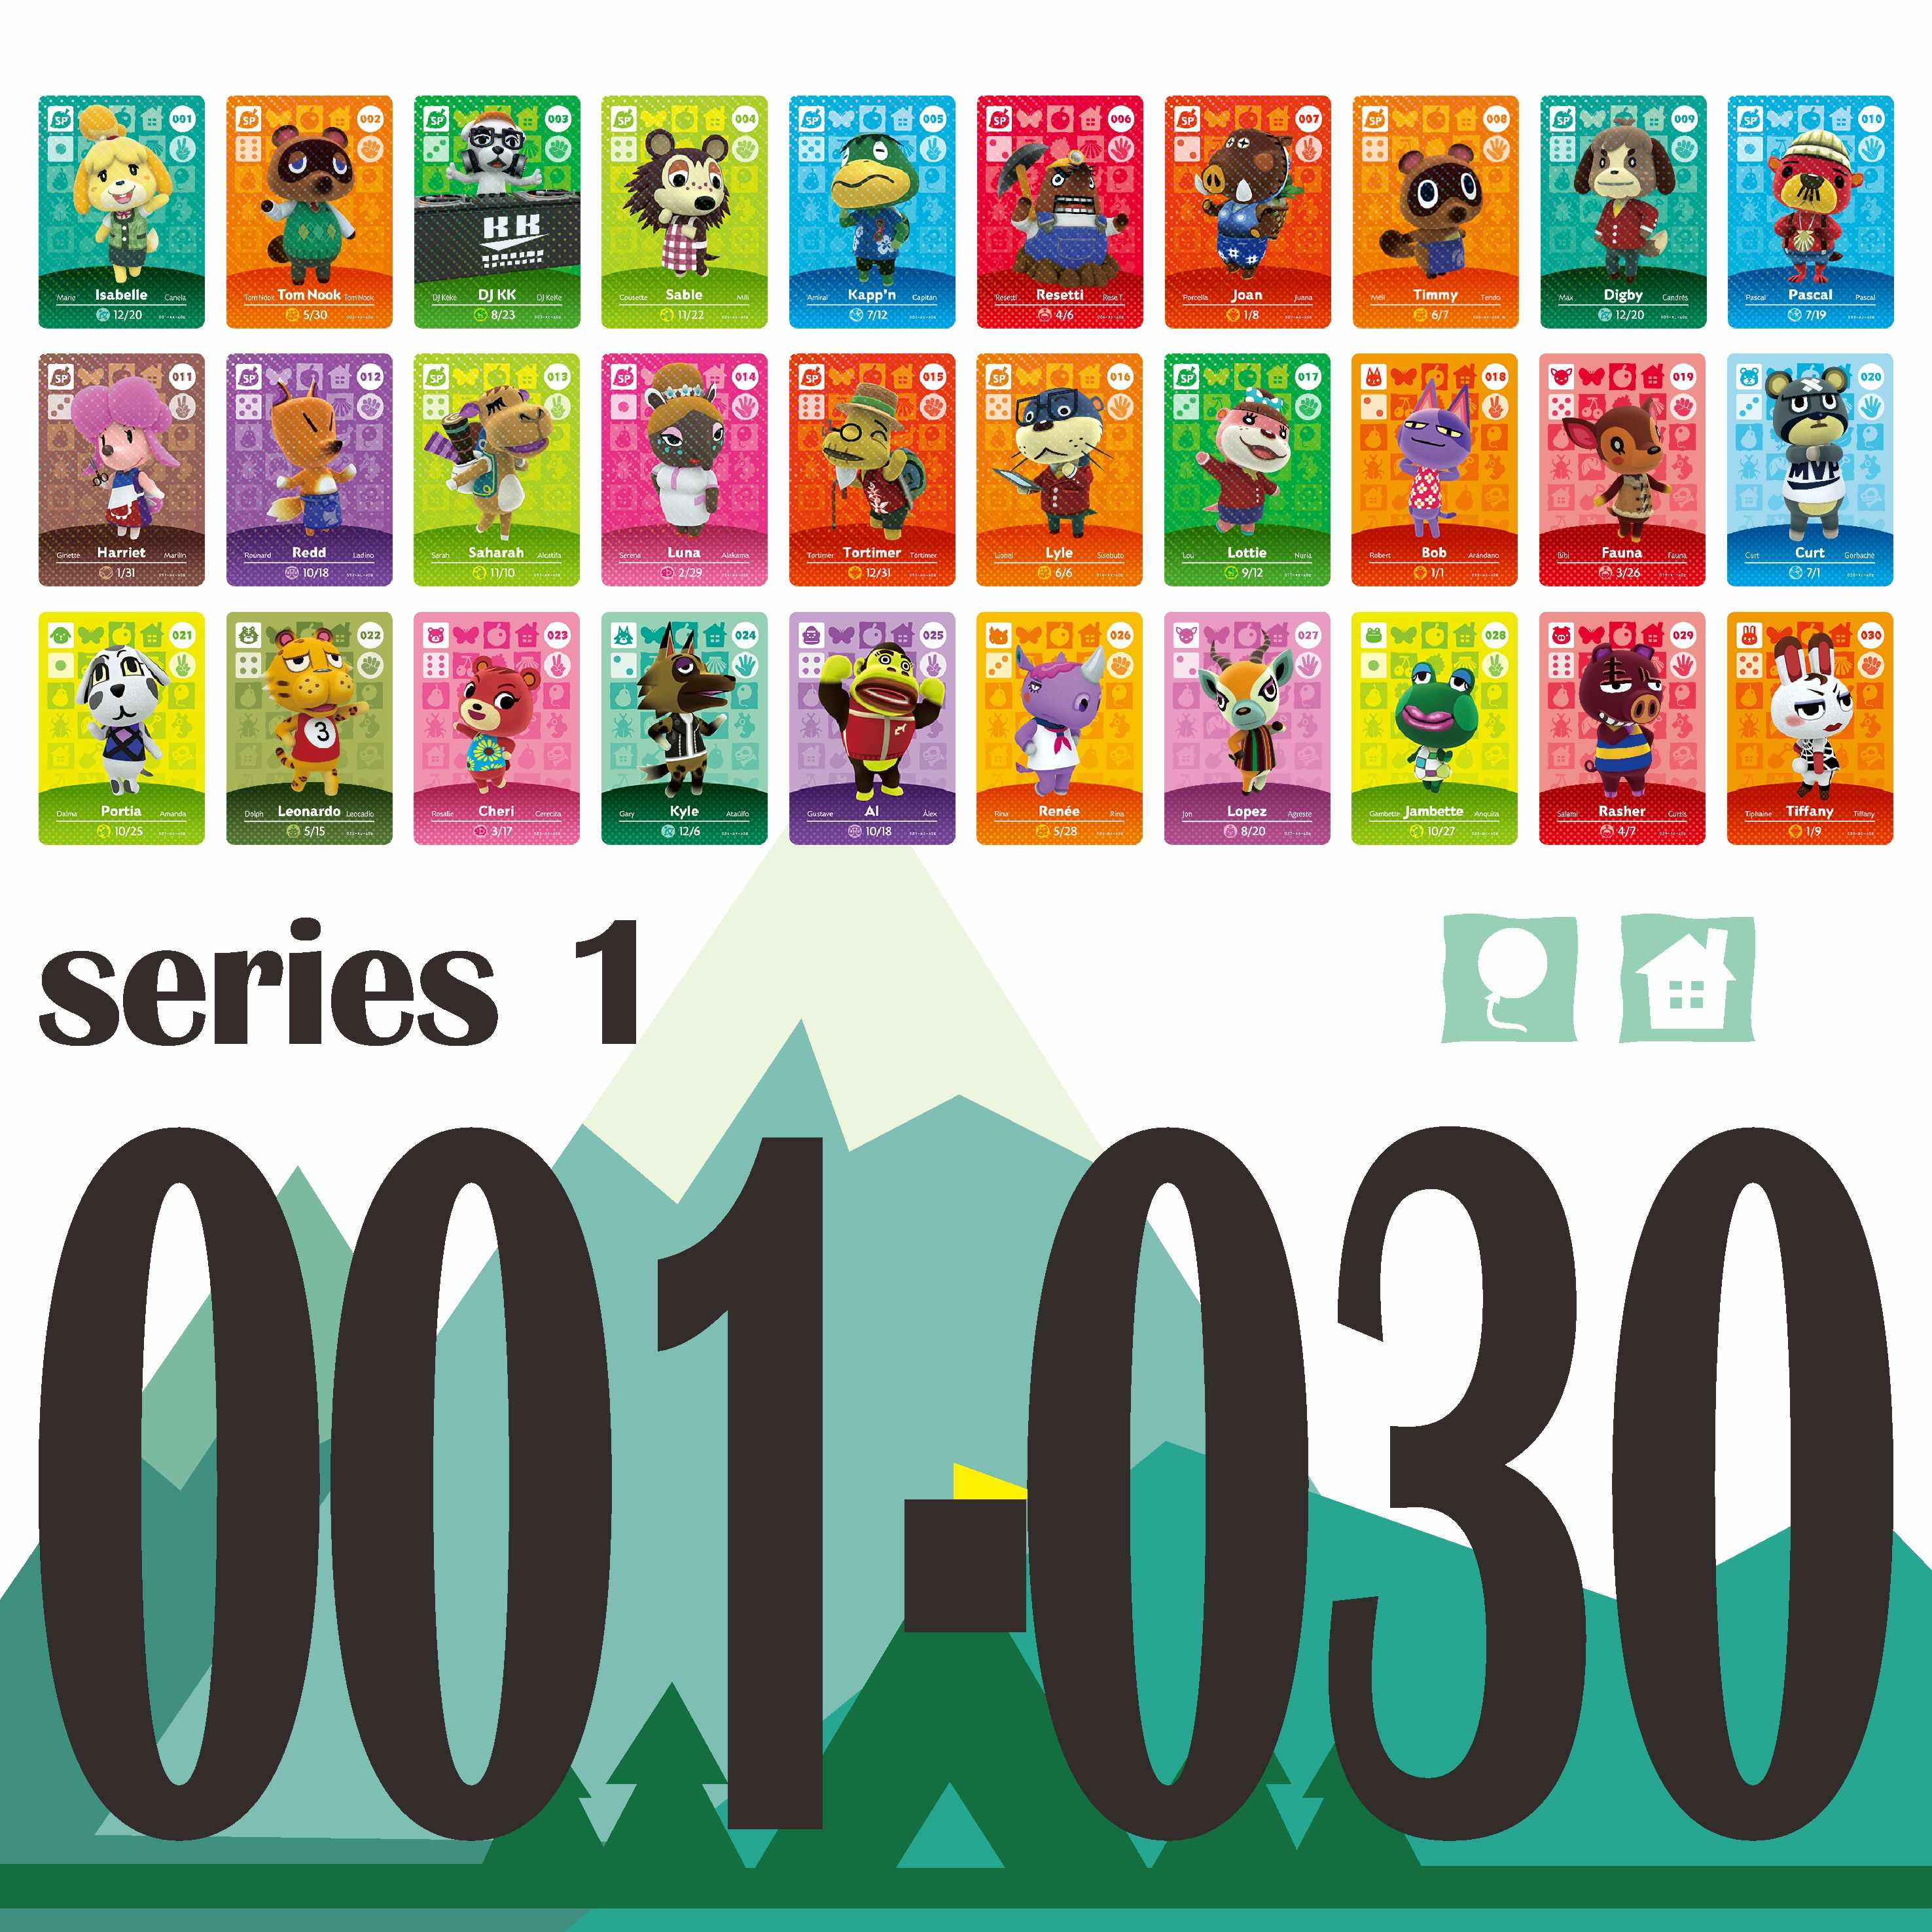 251 to 300 Animal Crossing Card NTAG215 Printed NFC Card Compatible Series 3 Pick from The List